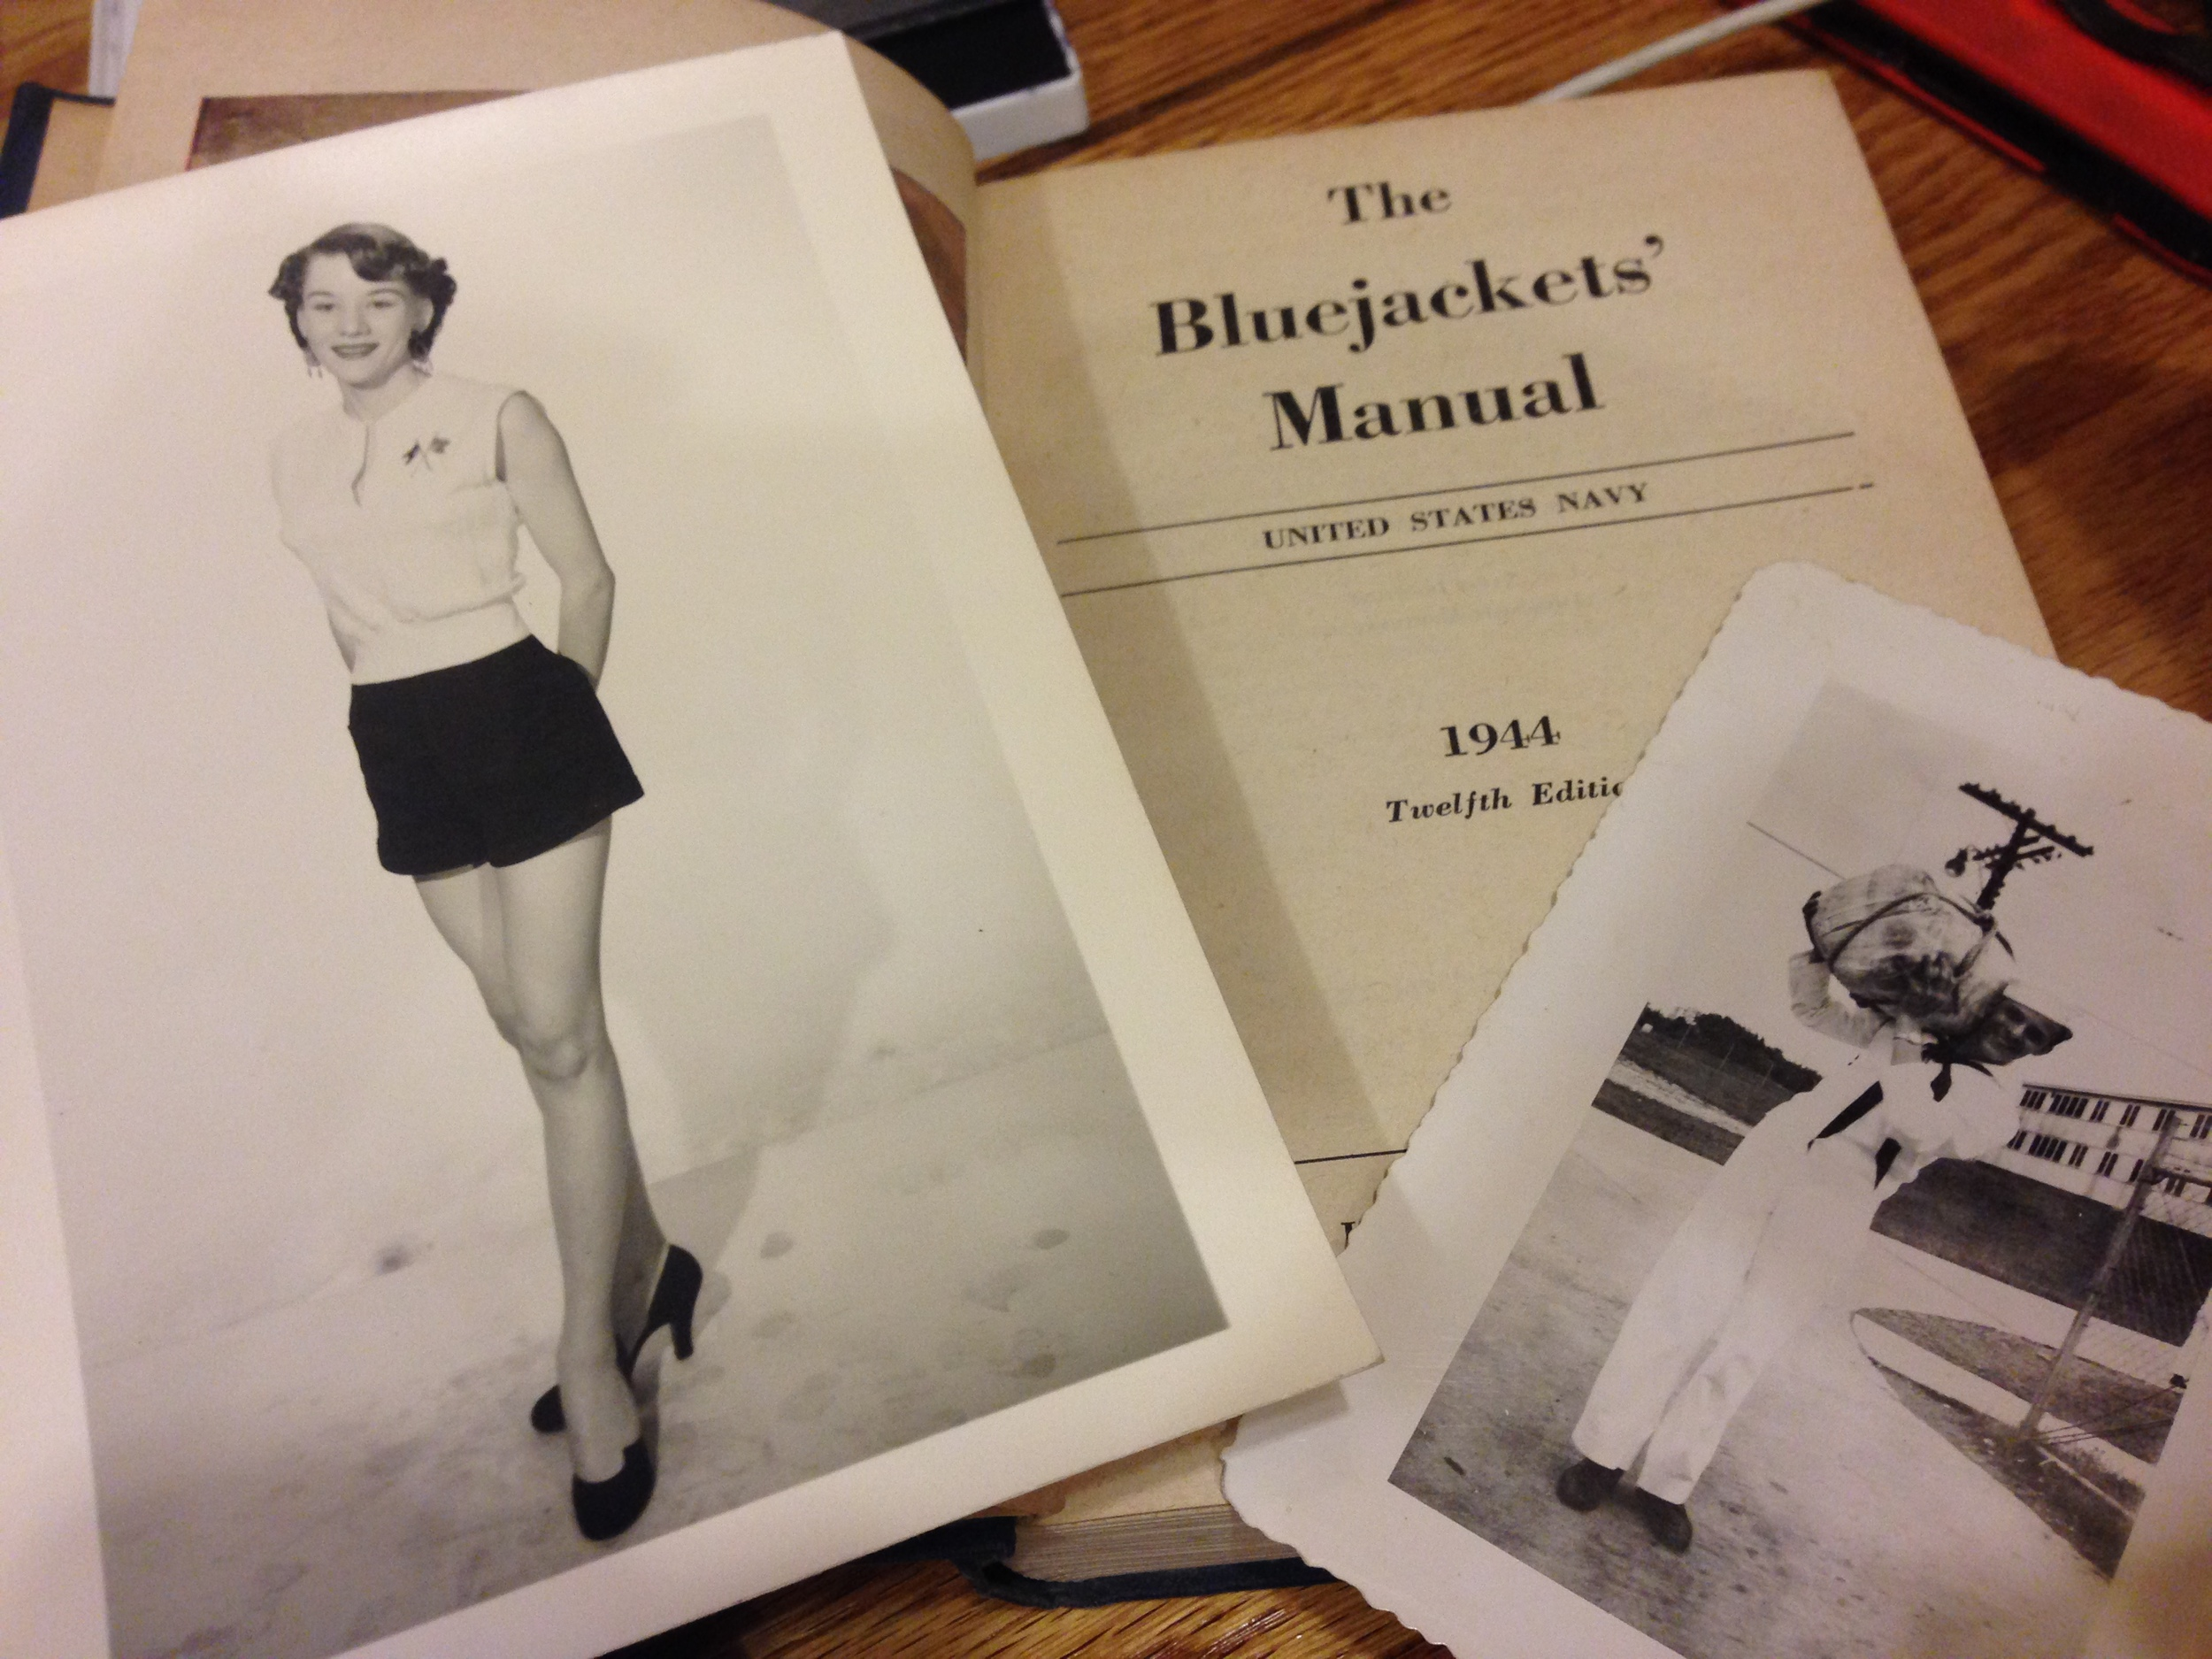 A US Navy Bluejackets' Manual, with a picture of its owner and his wife, a professional model,from 1944.